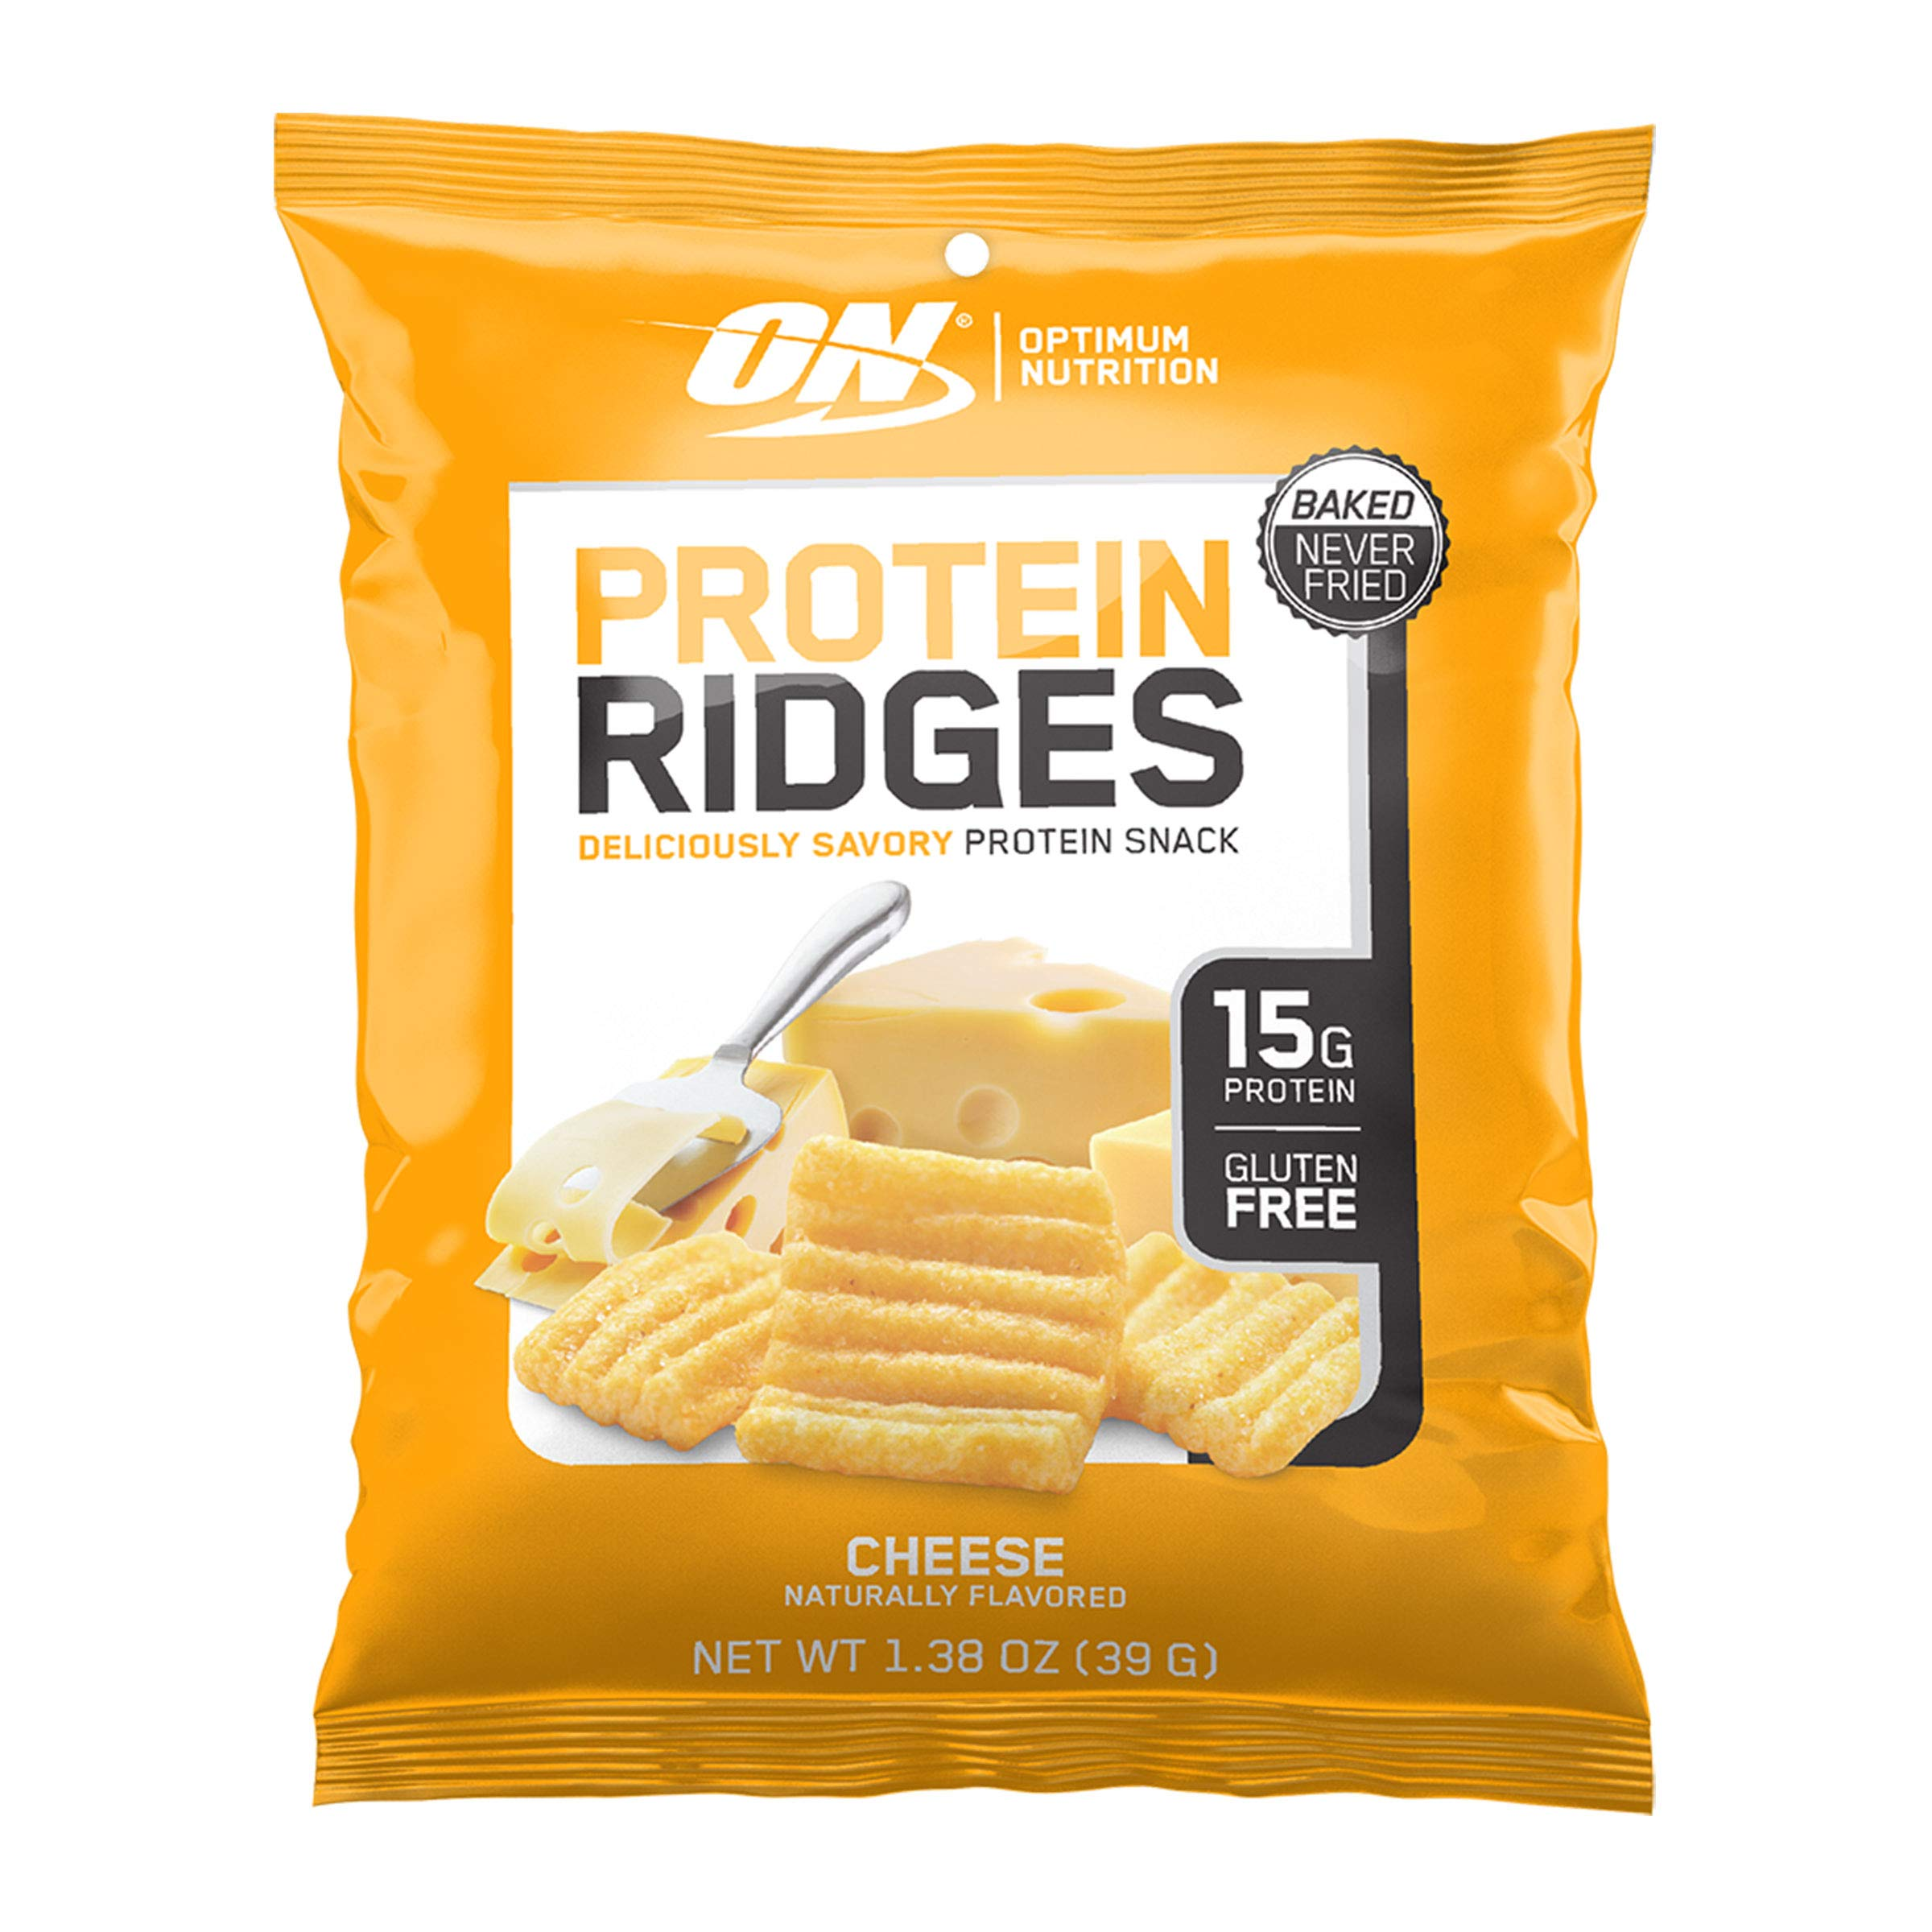 Optimum Nutrition Protein Ridges, Savory Baked Protein Snack Chips, Gluten Free, Flavor: Cheese, 10ct